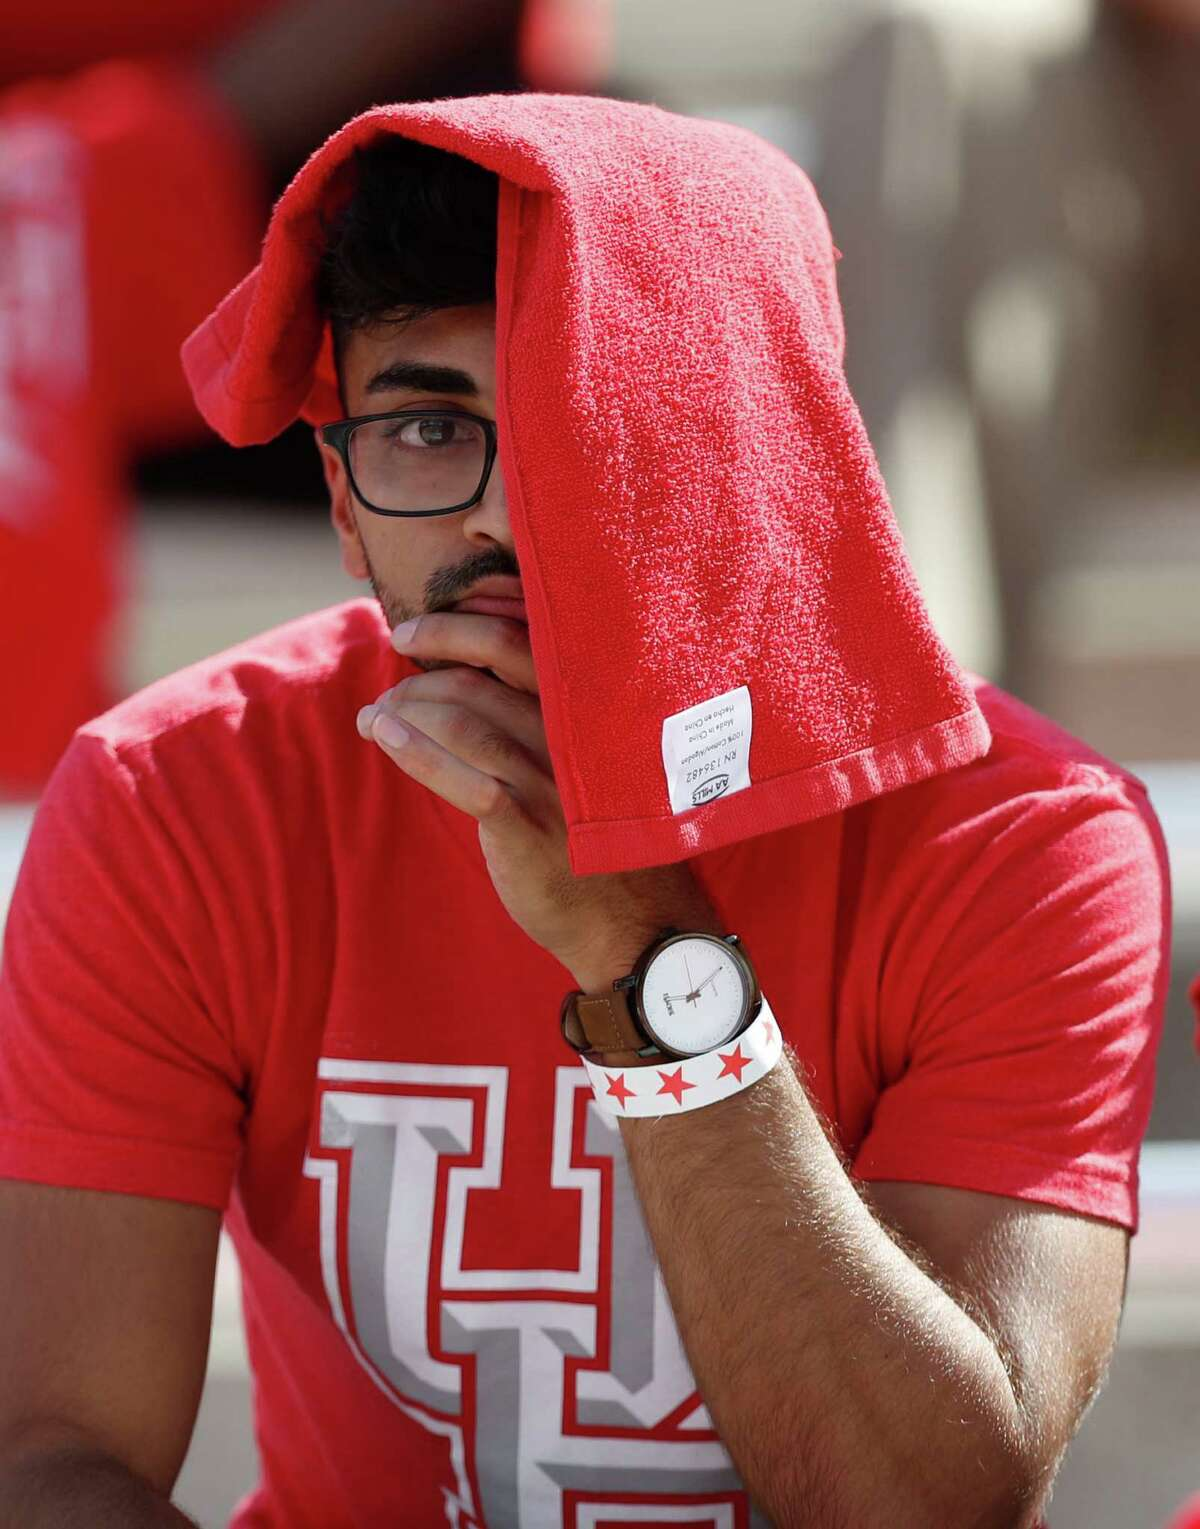 A Houston Cougars fan covers half of his face with a towel during the second quarter of a college football game at TDECU Stadium, Saturday,Oct. 29, 2016 in Houston.